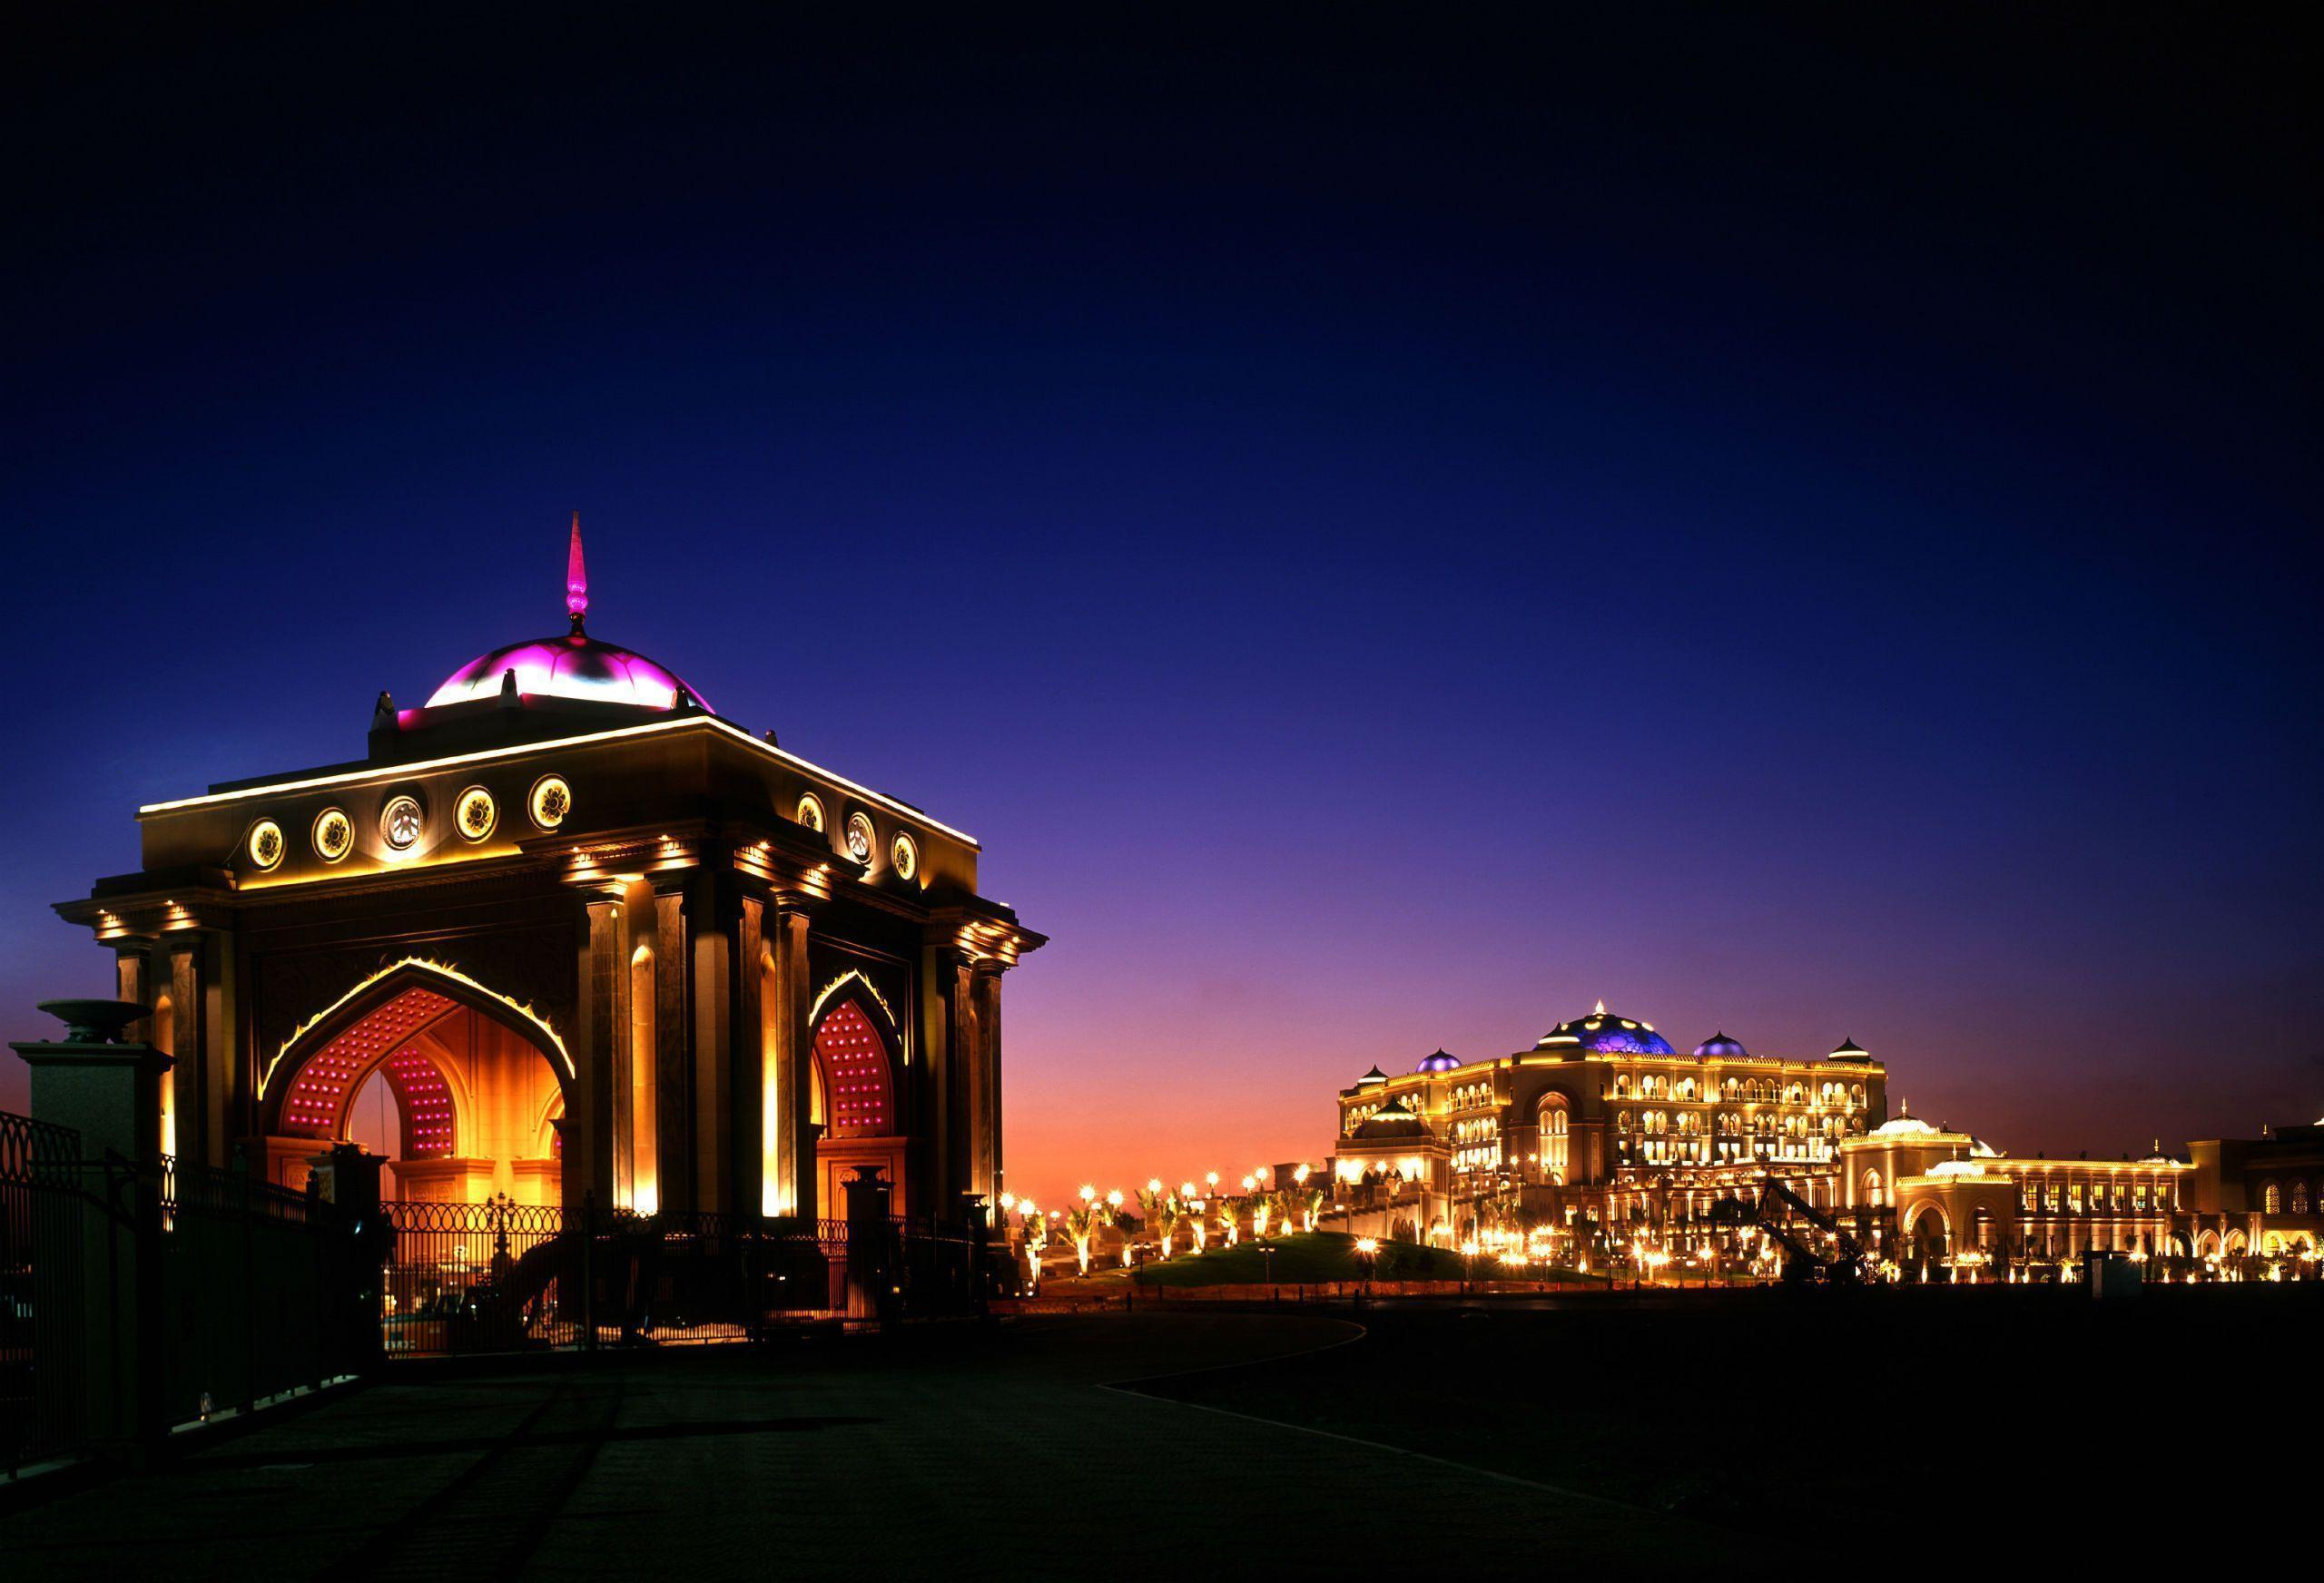 Emirates Palace Abu Dhabi Computer Wallpapers, Desktop Backgrounds